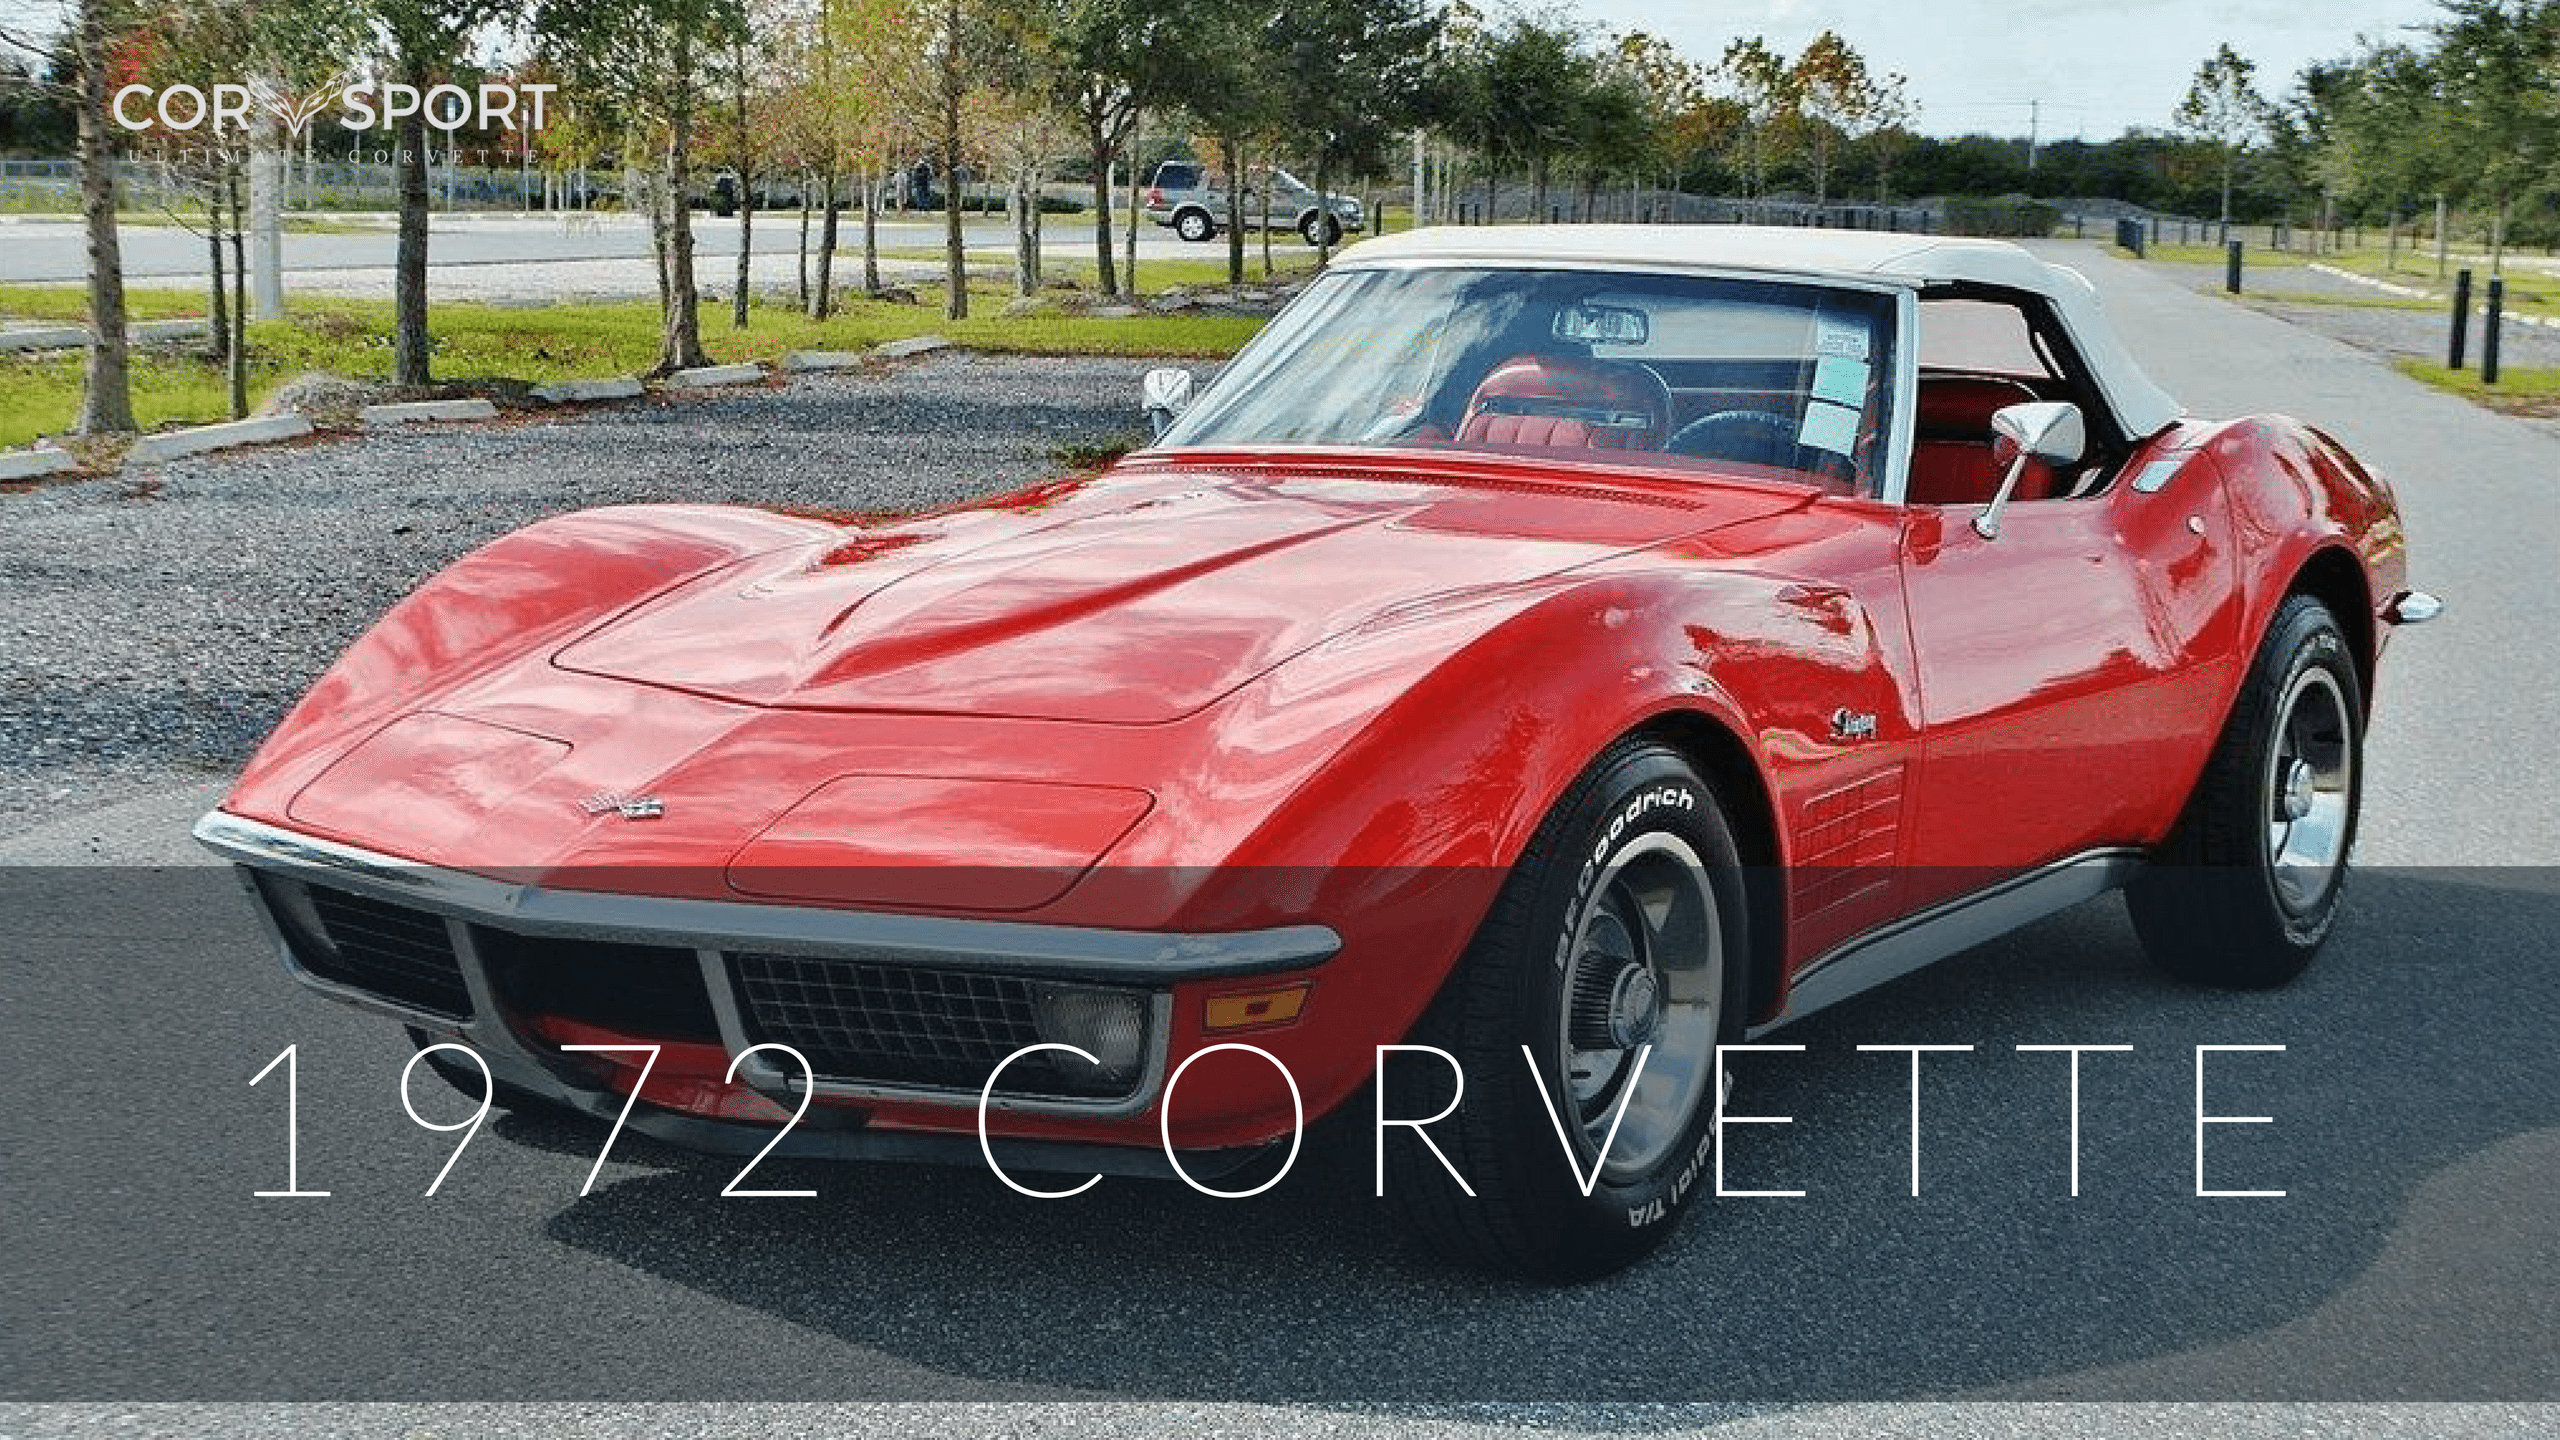 1972 C3 Corvette | Ultimate Guide (Overview, Specs, VIN Info